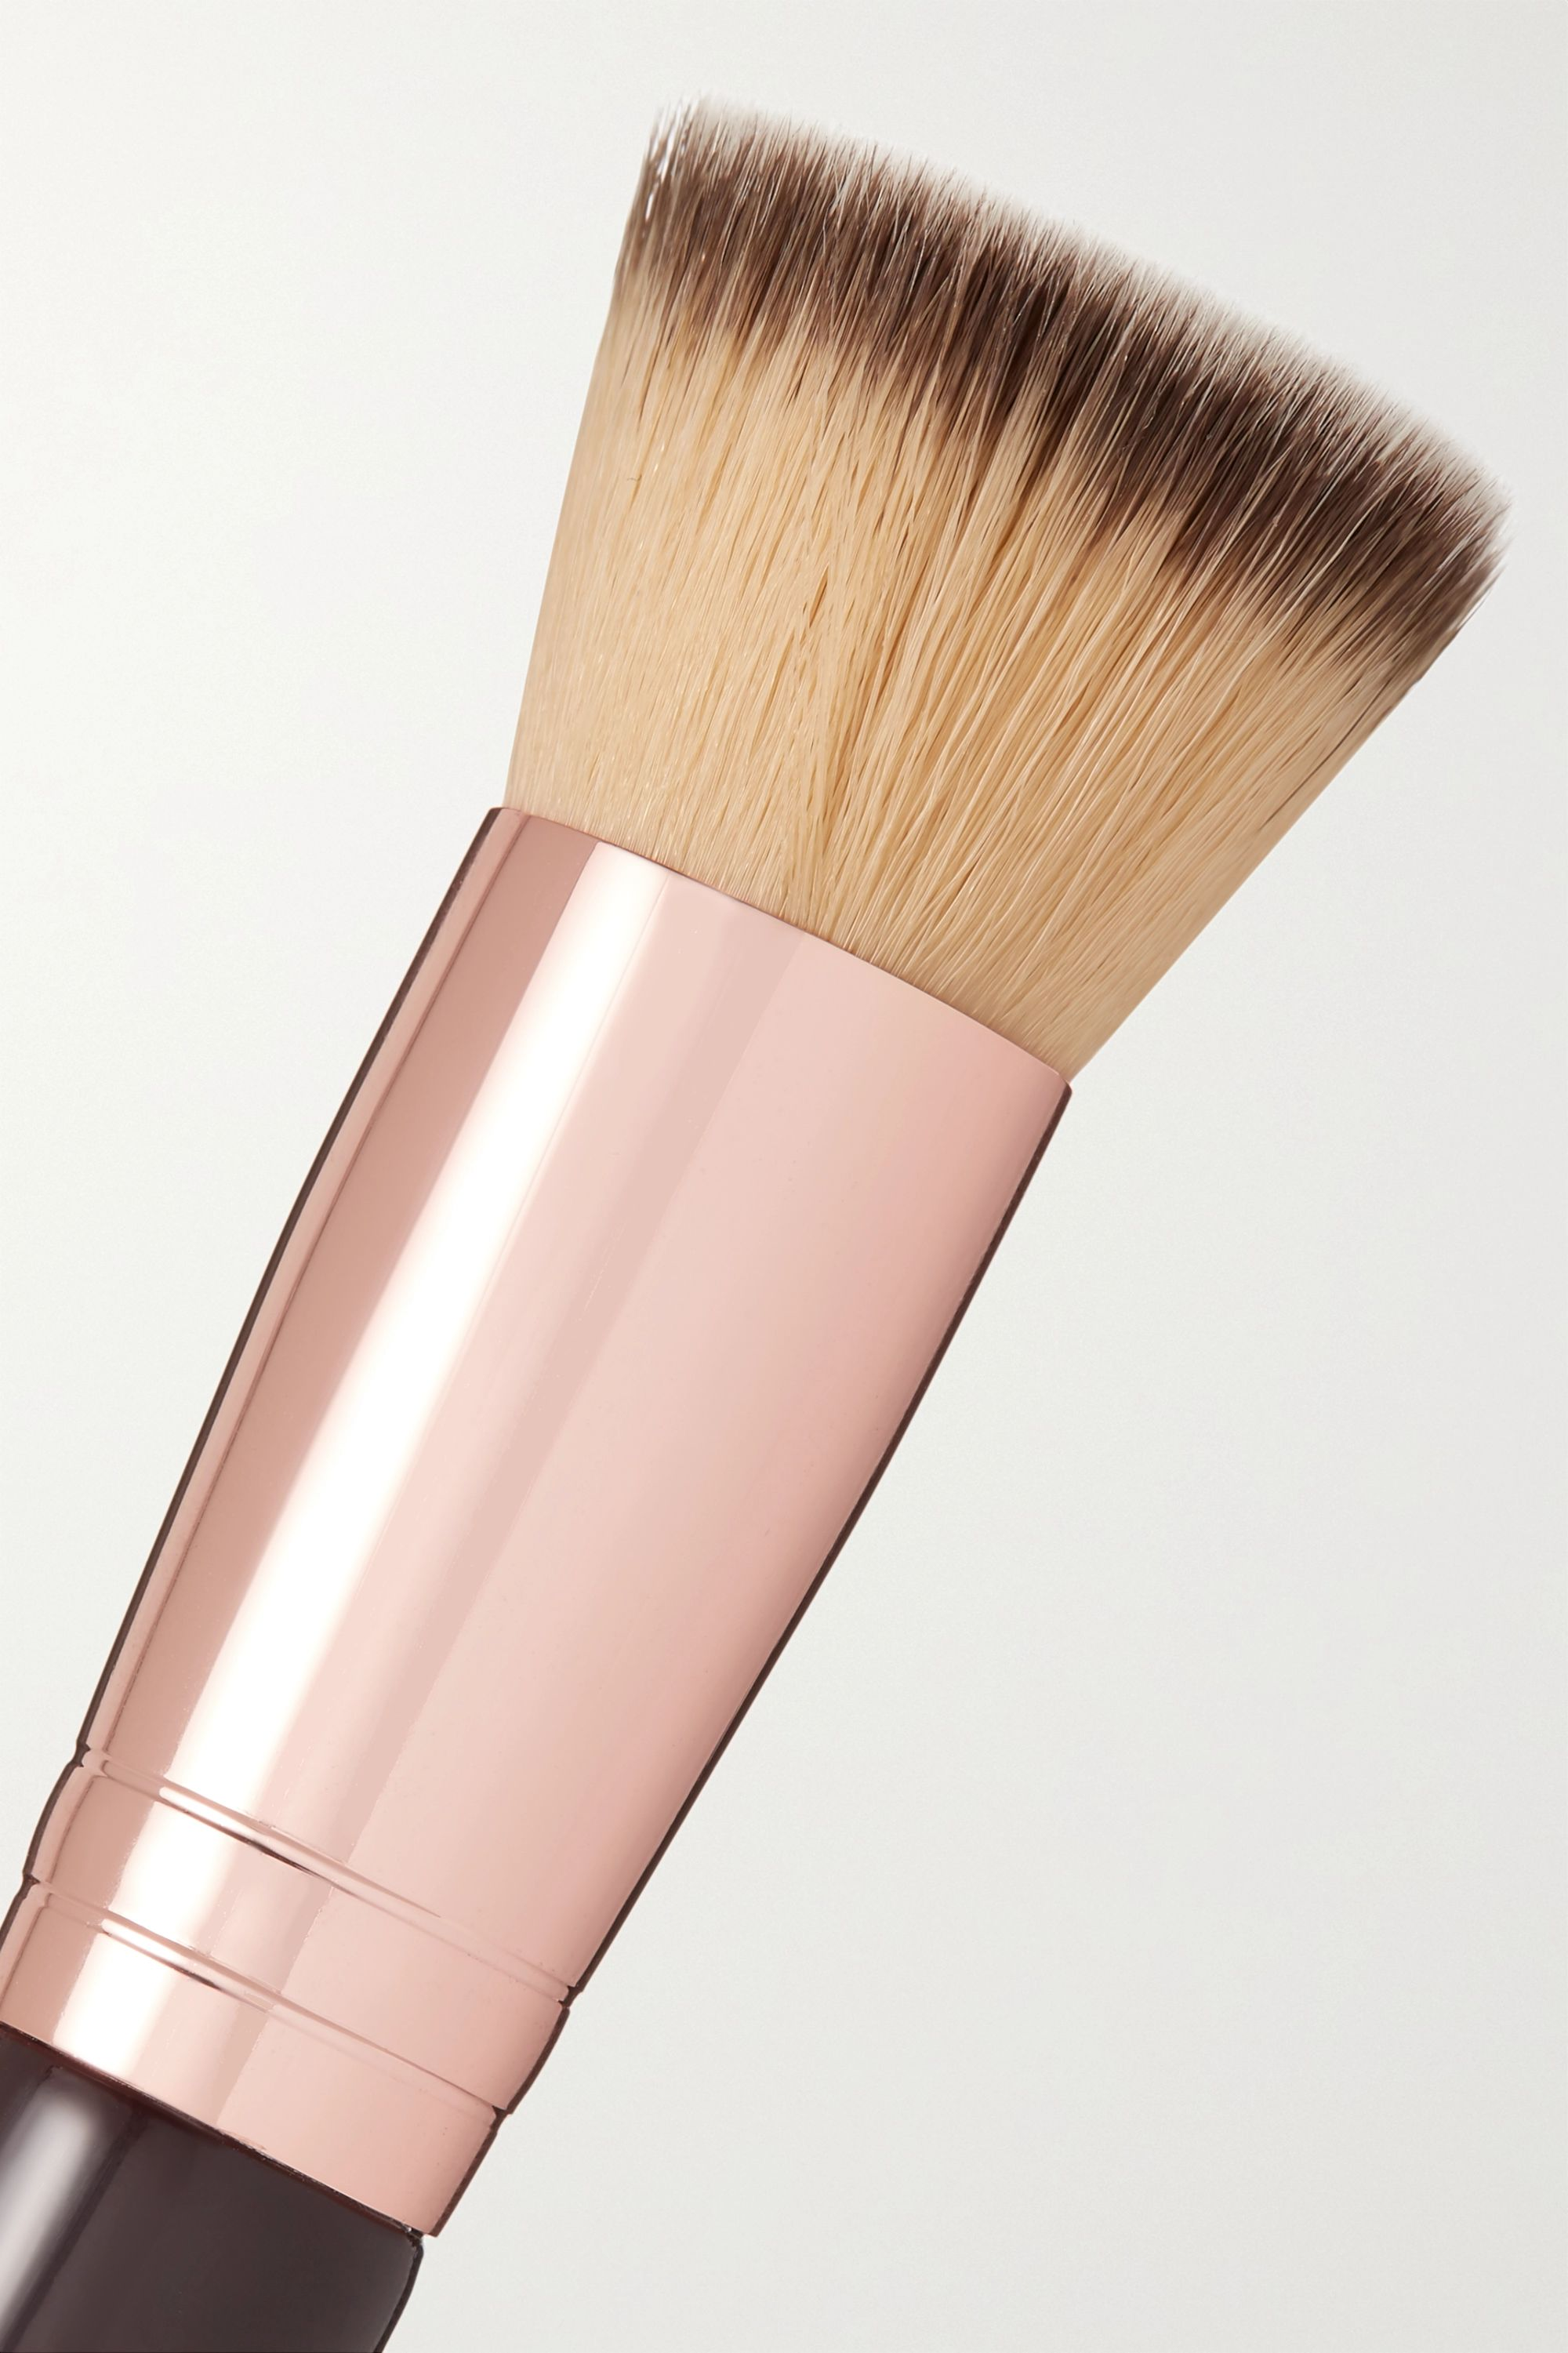 Charlotte Tilbury Hollywood Complexion Brush